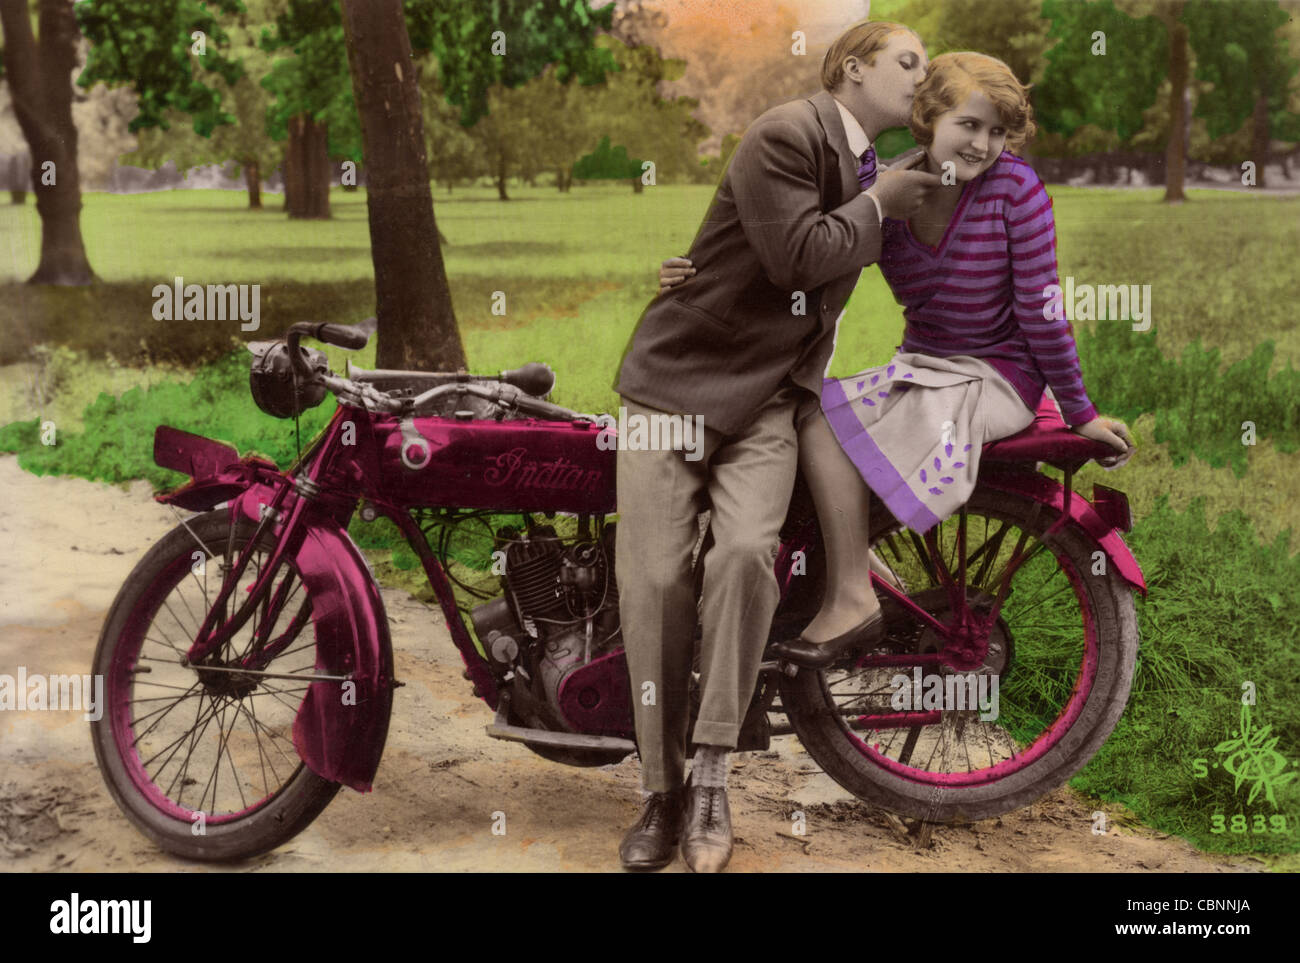 stock photgraph of couple on vintage motorcycle